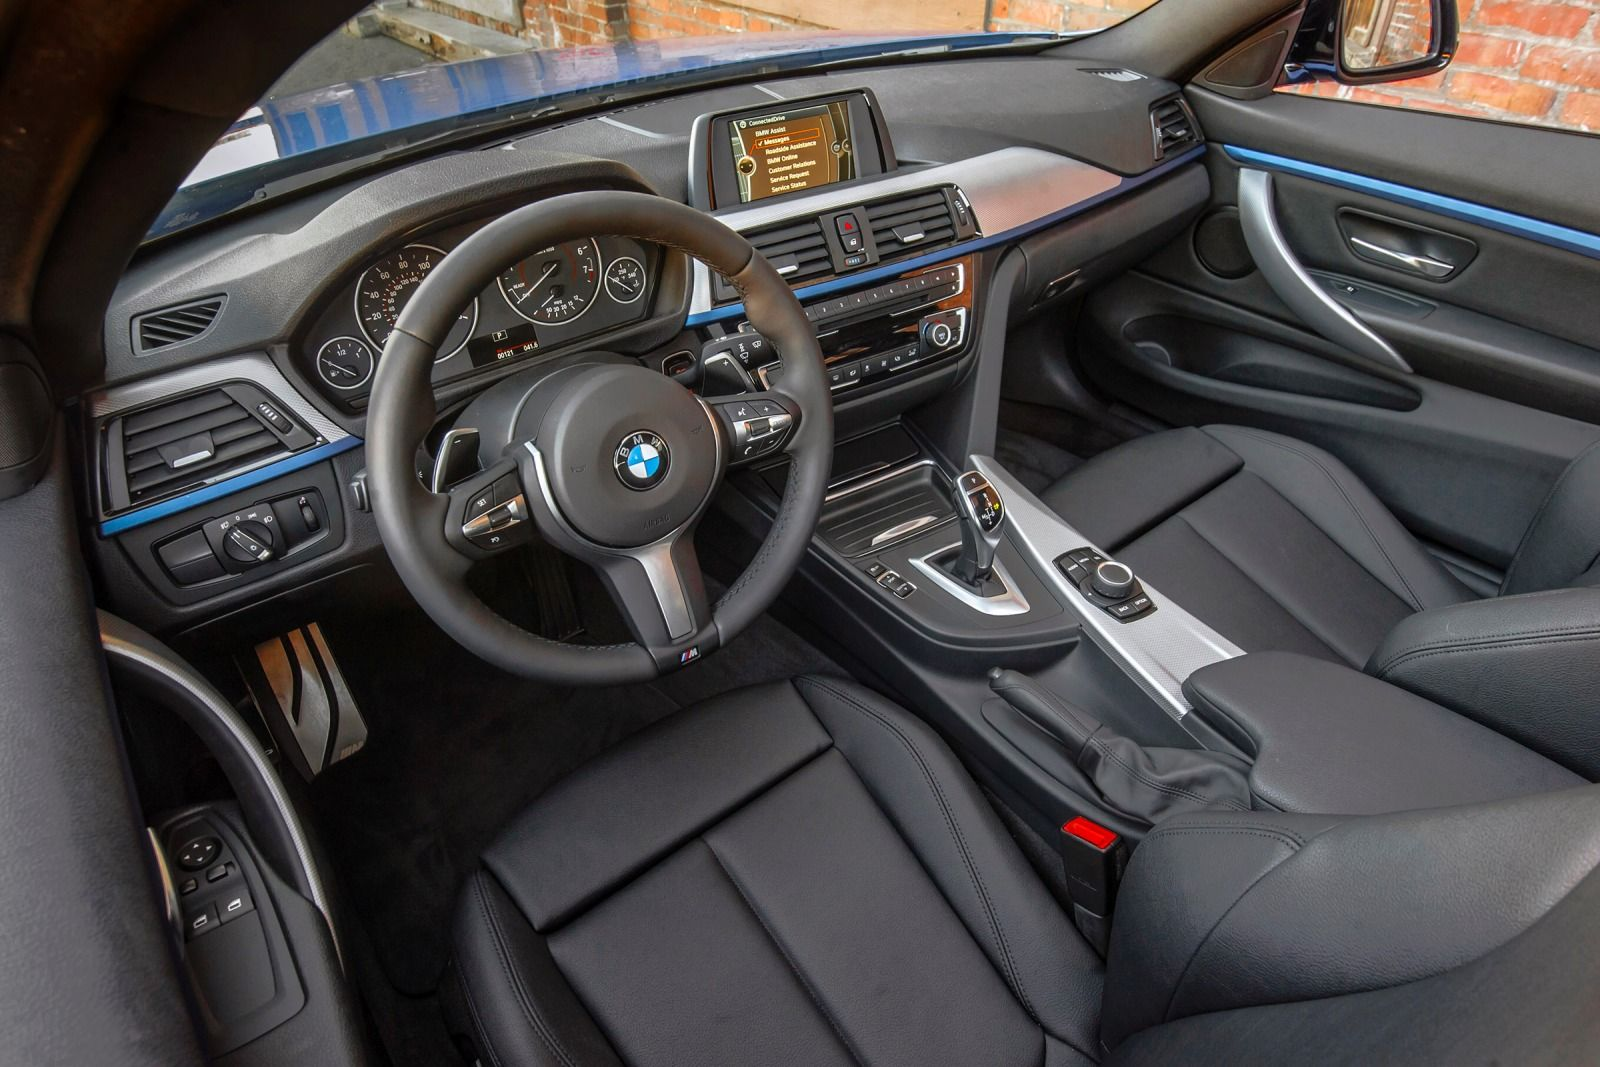 2015 BMW 4 Series - Interior